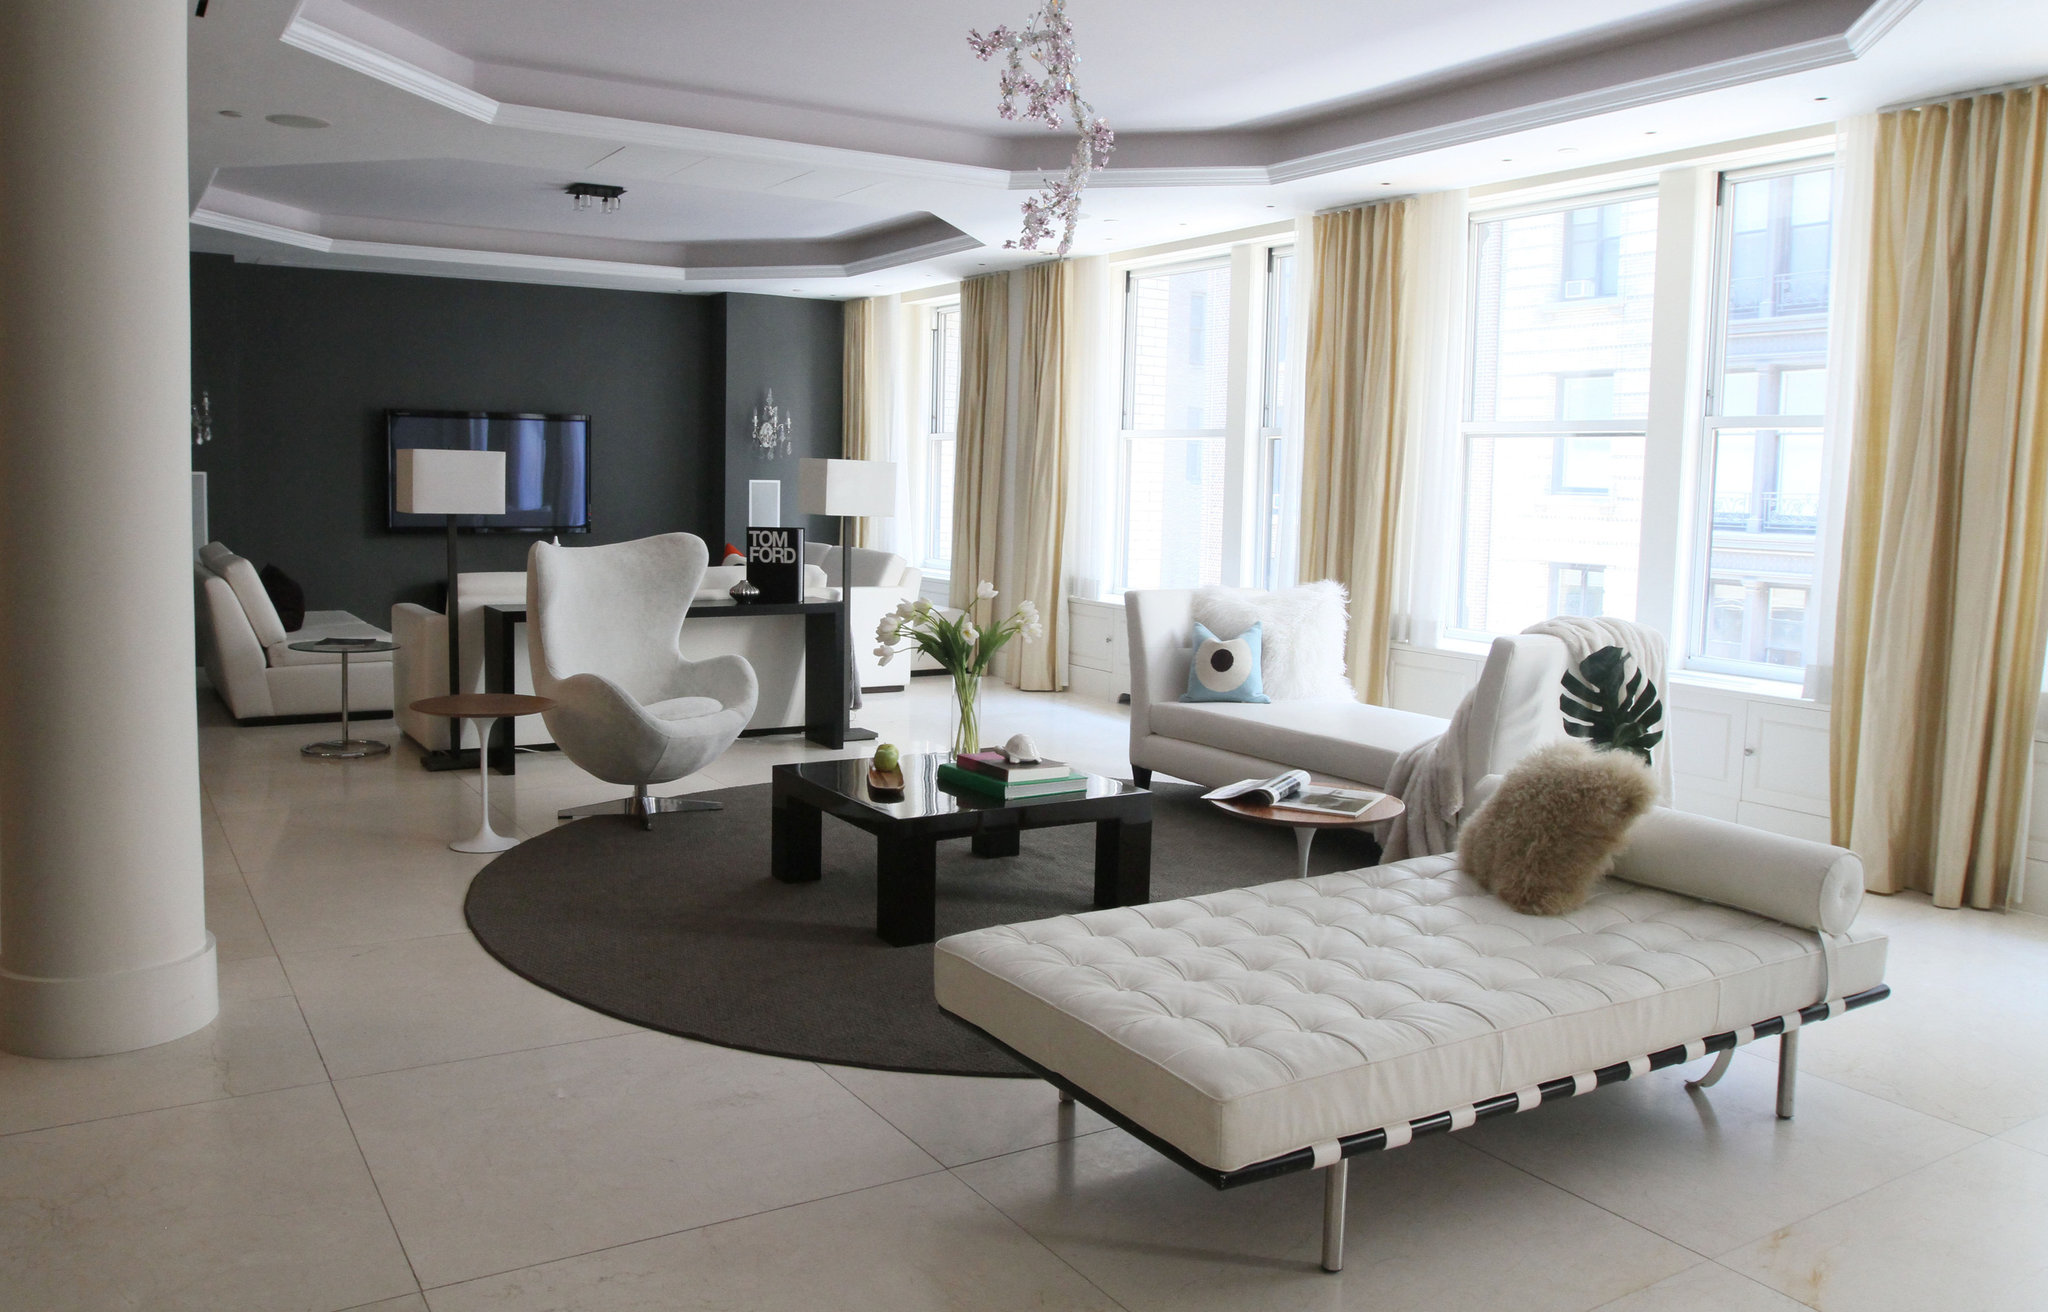 Virtual consultations from professionals in the remote home staging